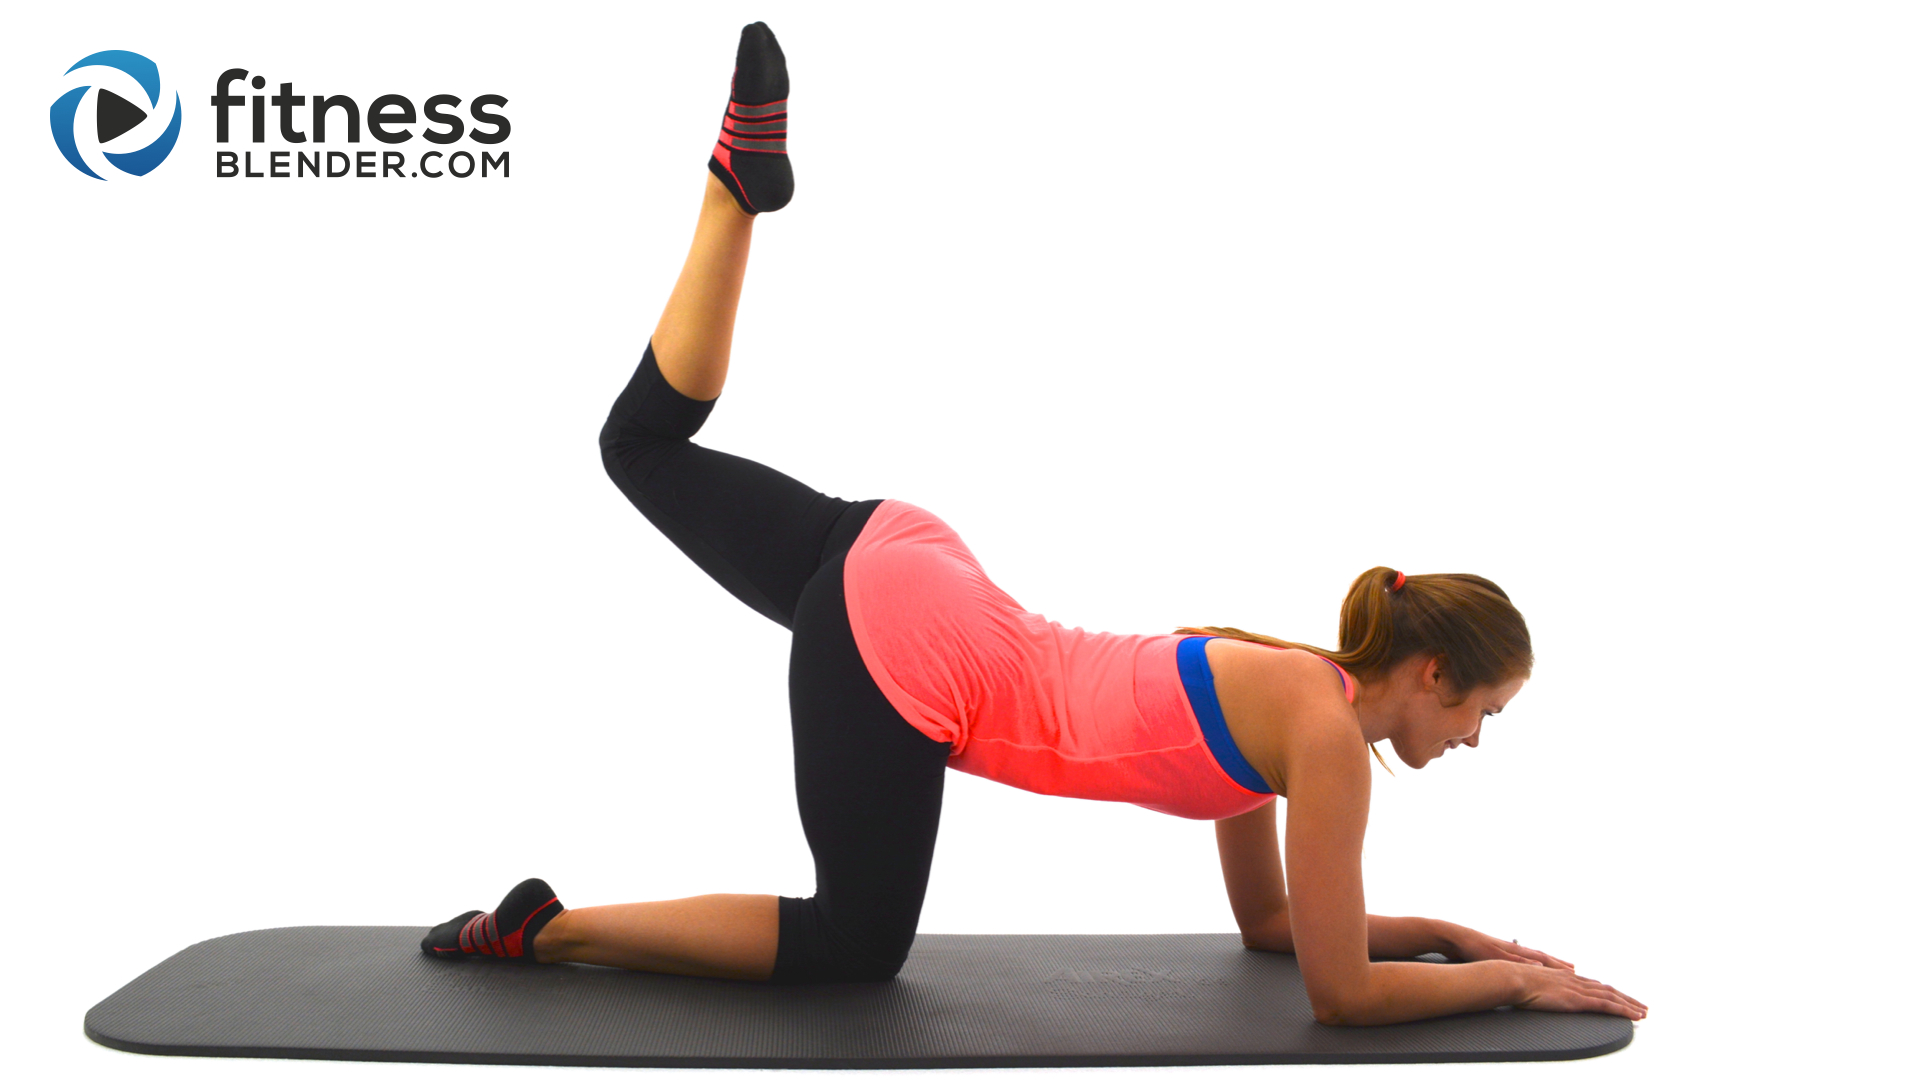 Leg slimming pilates butt and thigh workout to lift glutes